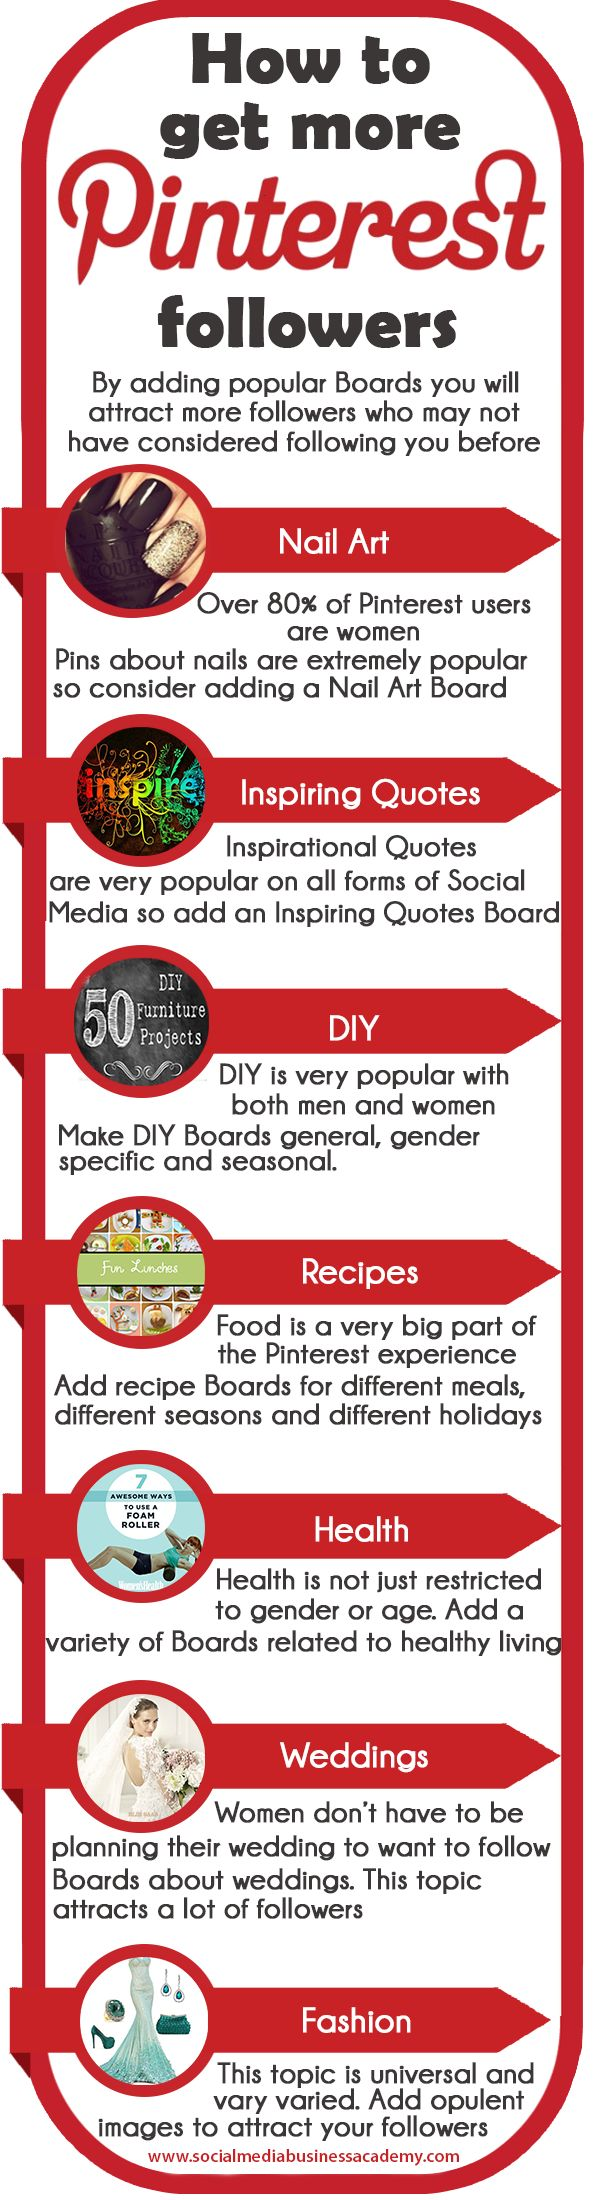 #PinterestExpert Gaynor Parke shares how to get more Pinterest followers. For more Pinterest for business tips and resources visit www.socialmediabusinessacademy.com Pinterest Infographic